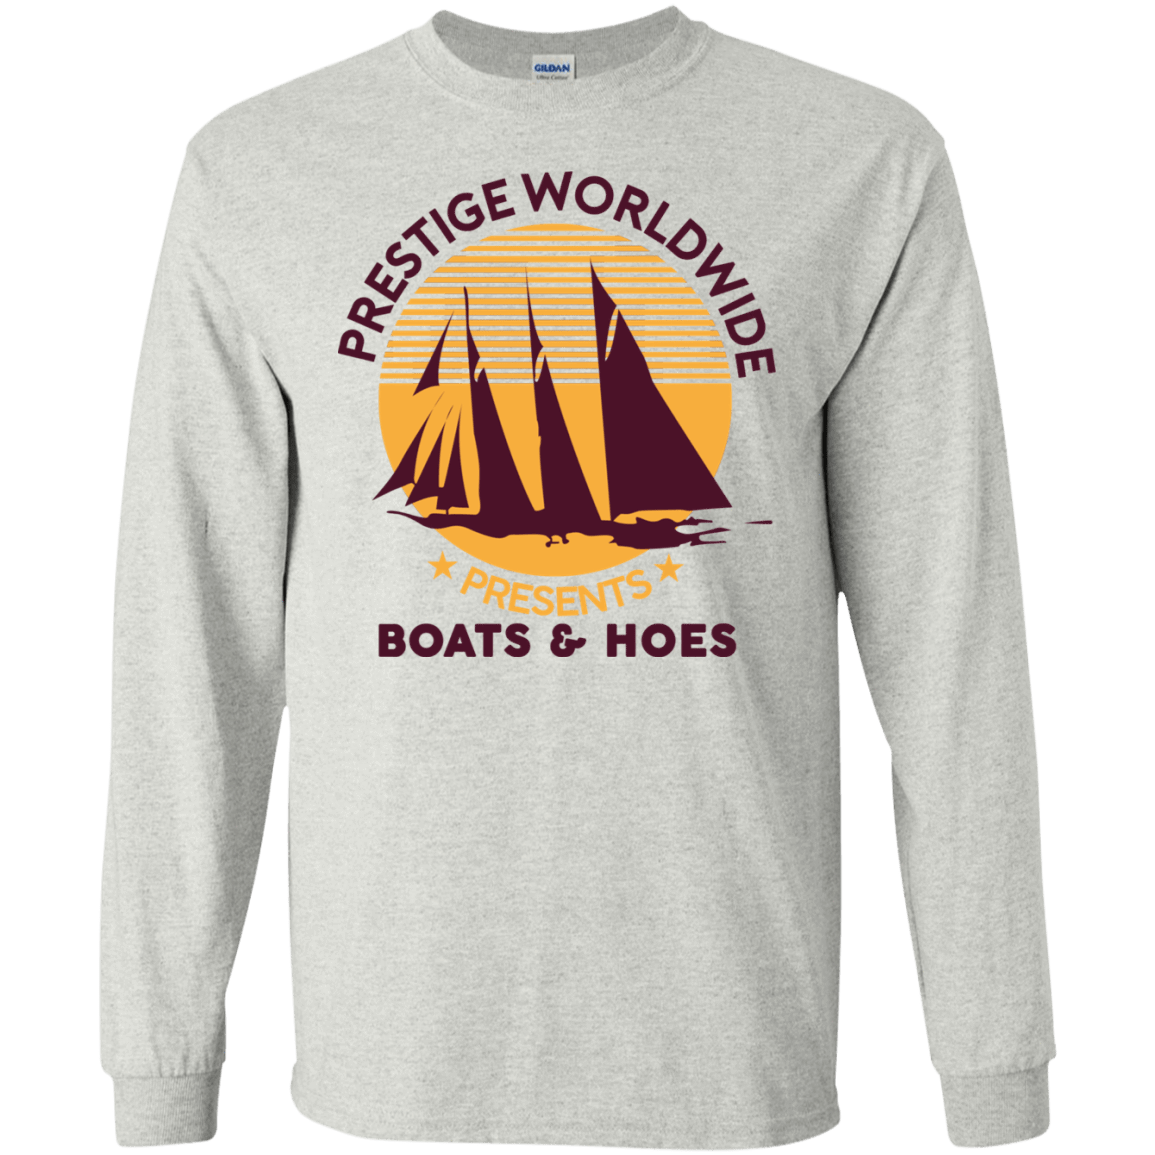 Prestige Worldwide Presents Boats & Hoes 30-2112-72790289-10754 - Tee Ript